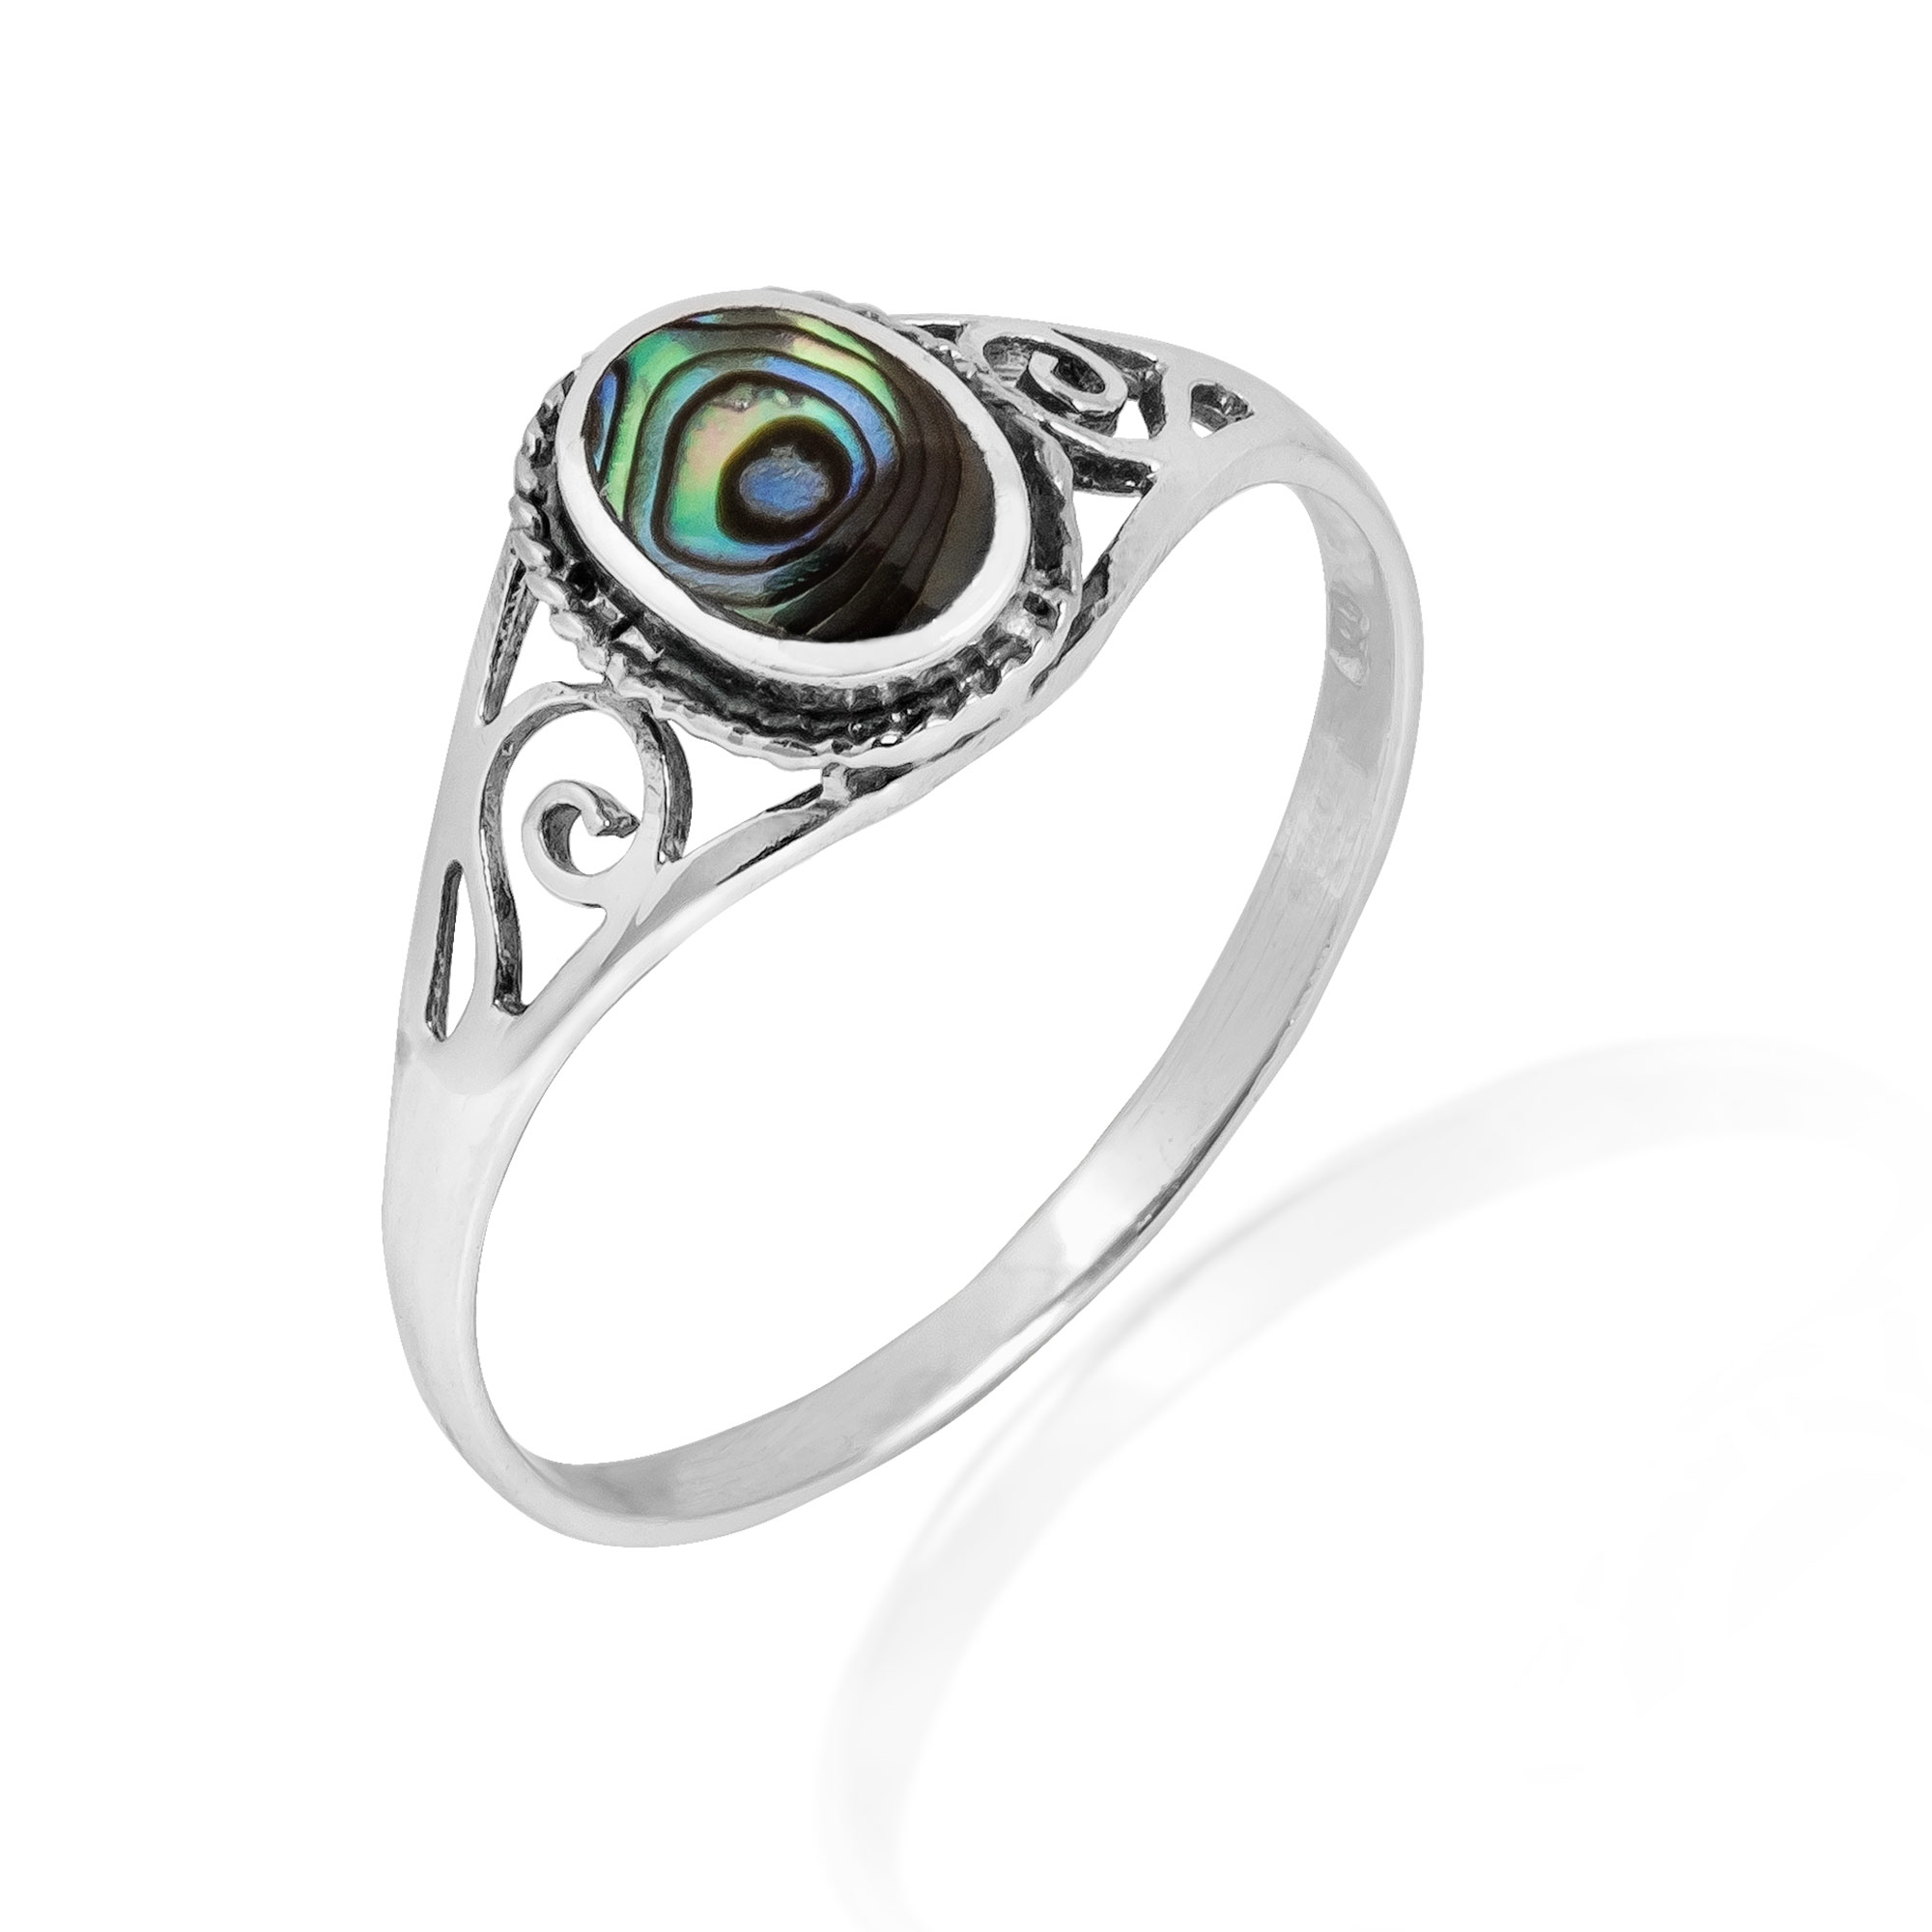 wedding molten bands ring abalone a new rings hand and silver engagement unique surface crafted mens buy cool